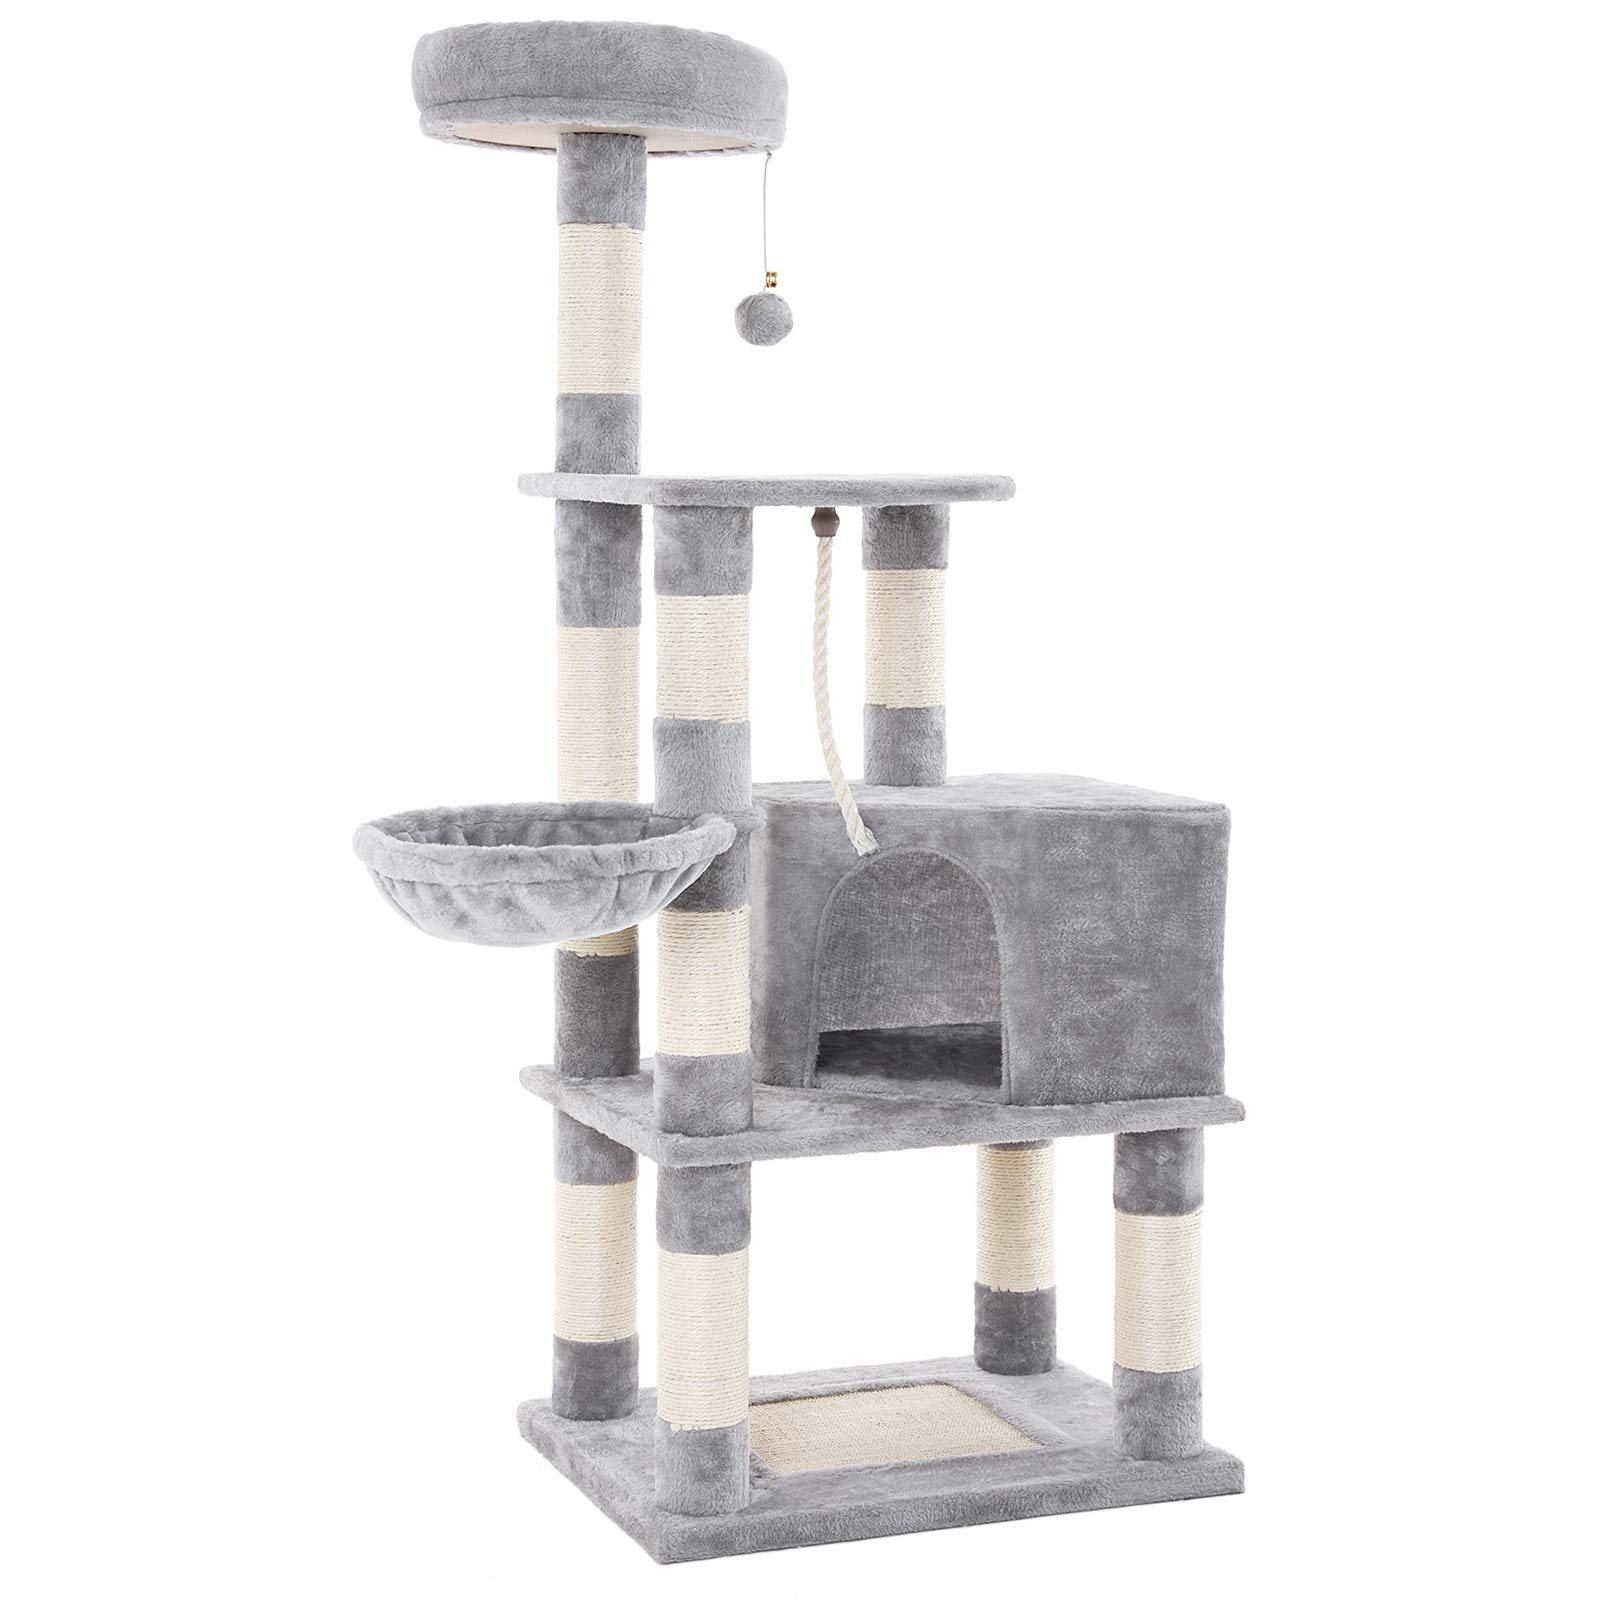 FEANDREA Cat Tree with Scratching Board, Basket Lounger and Large Cave UPCT60H by FEANDREA